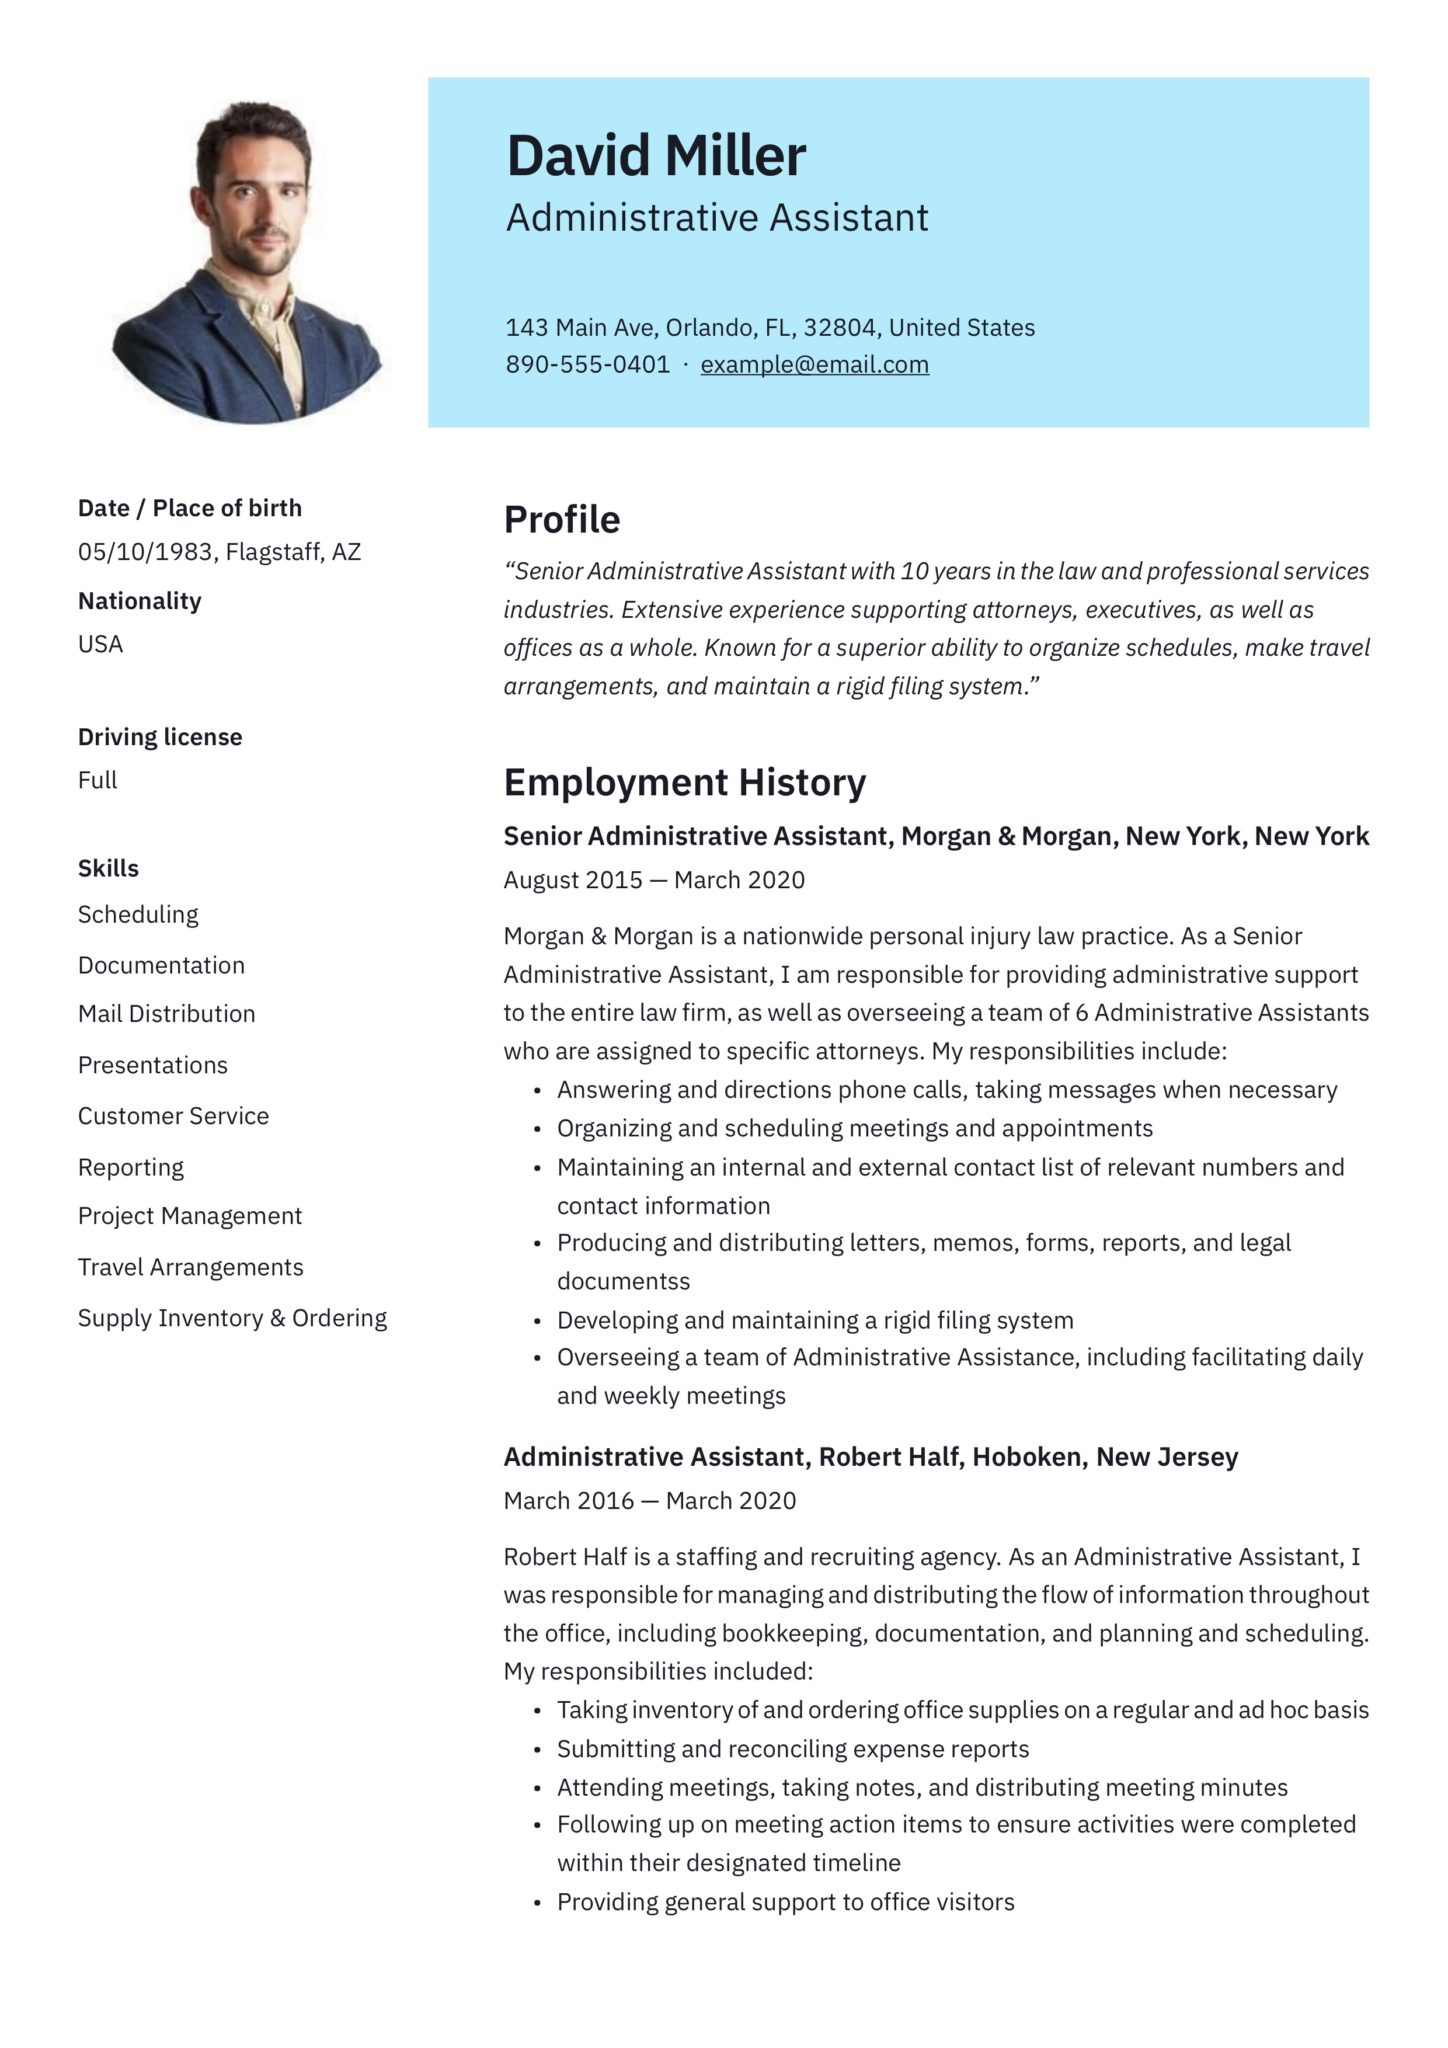 free administrative assistant resumes writing guide pdf resume title scaled beginner Resume Administrative Assistant Resume Title